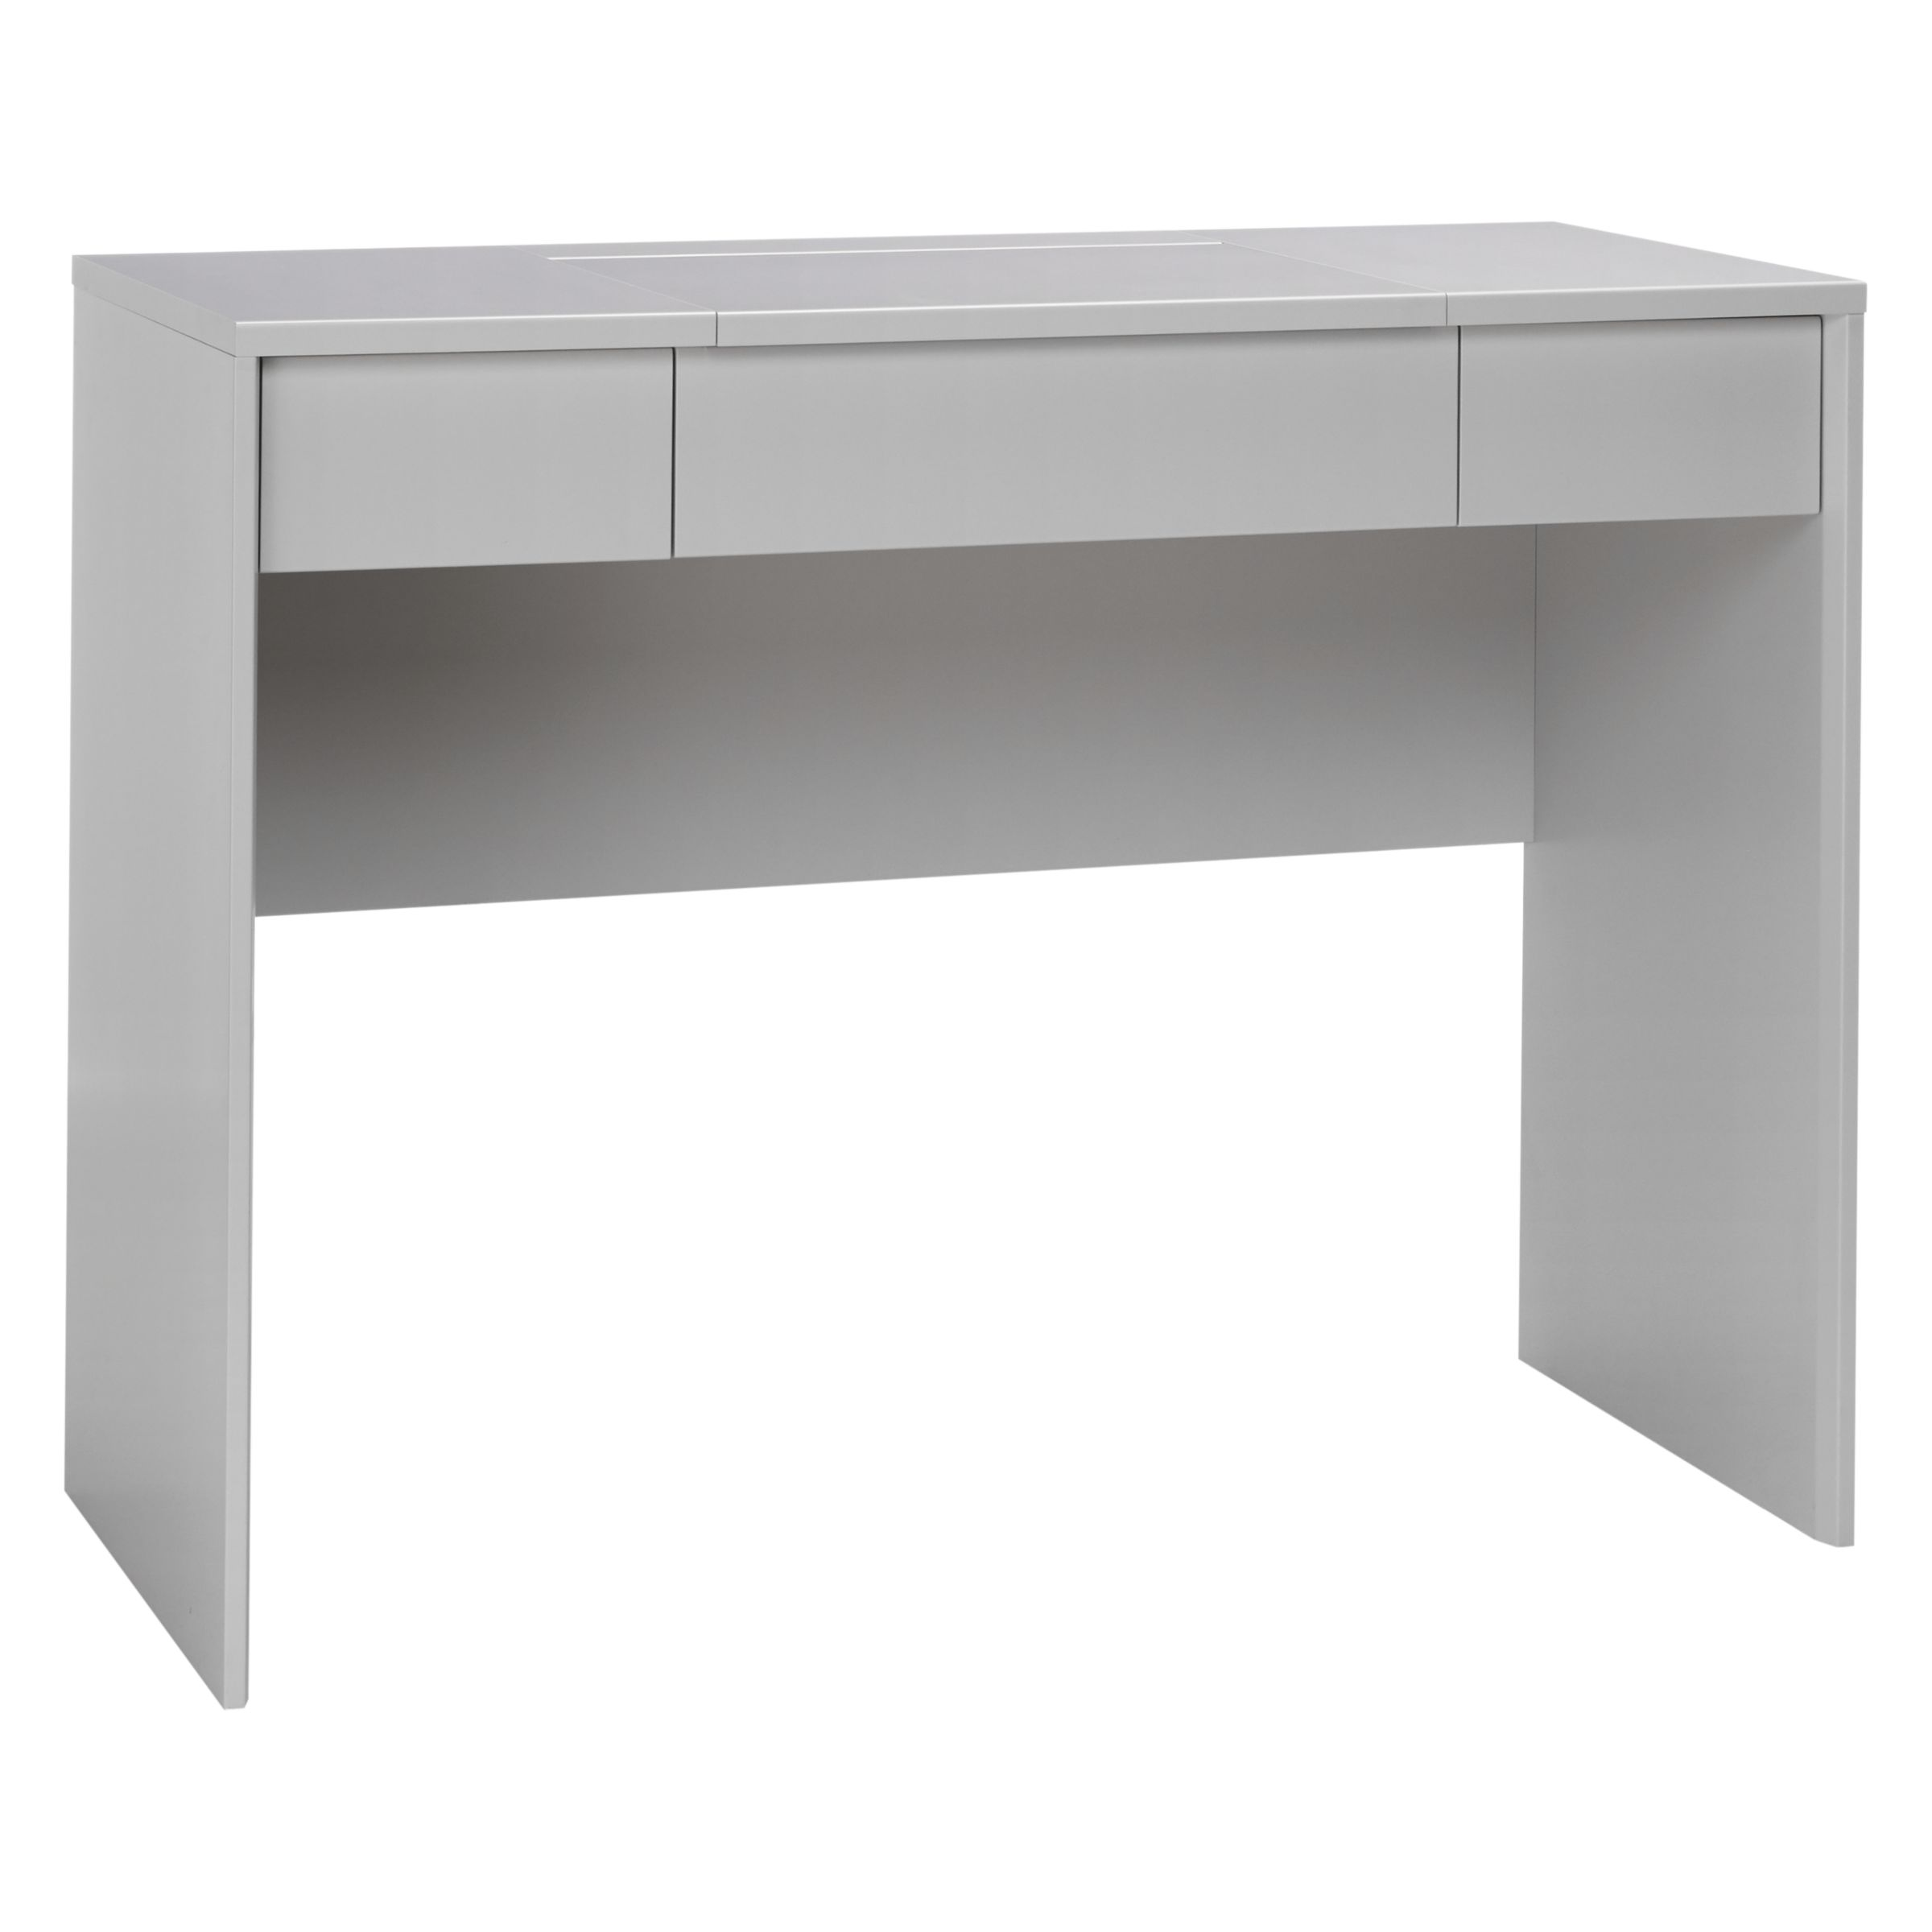 fac71384c0aa John Lewis & Partners Napoli Dressing Table at John Lewis & Partners